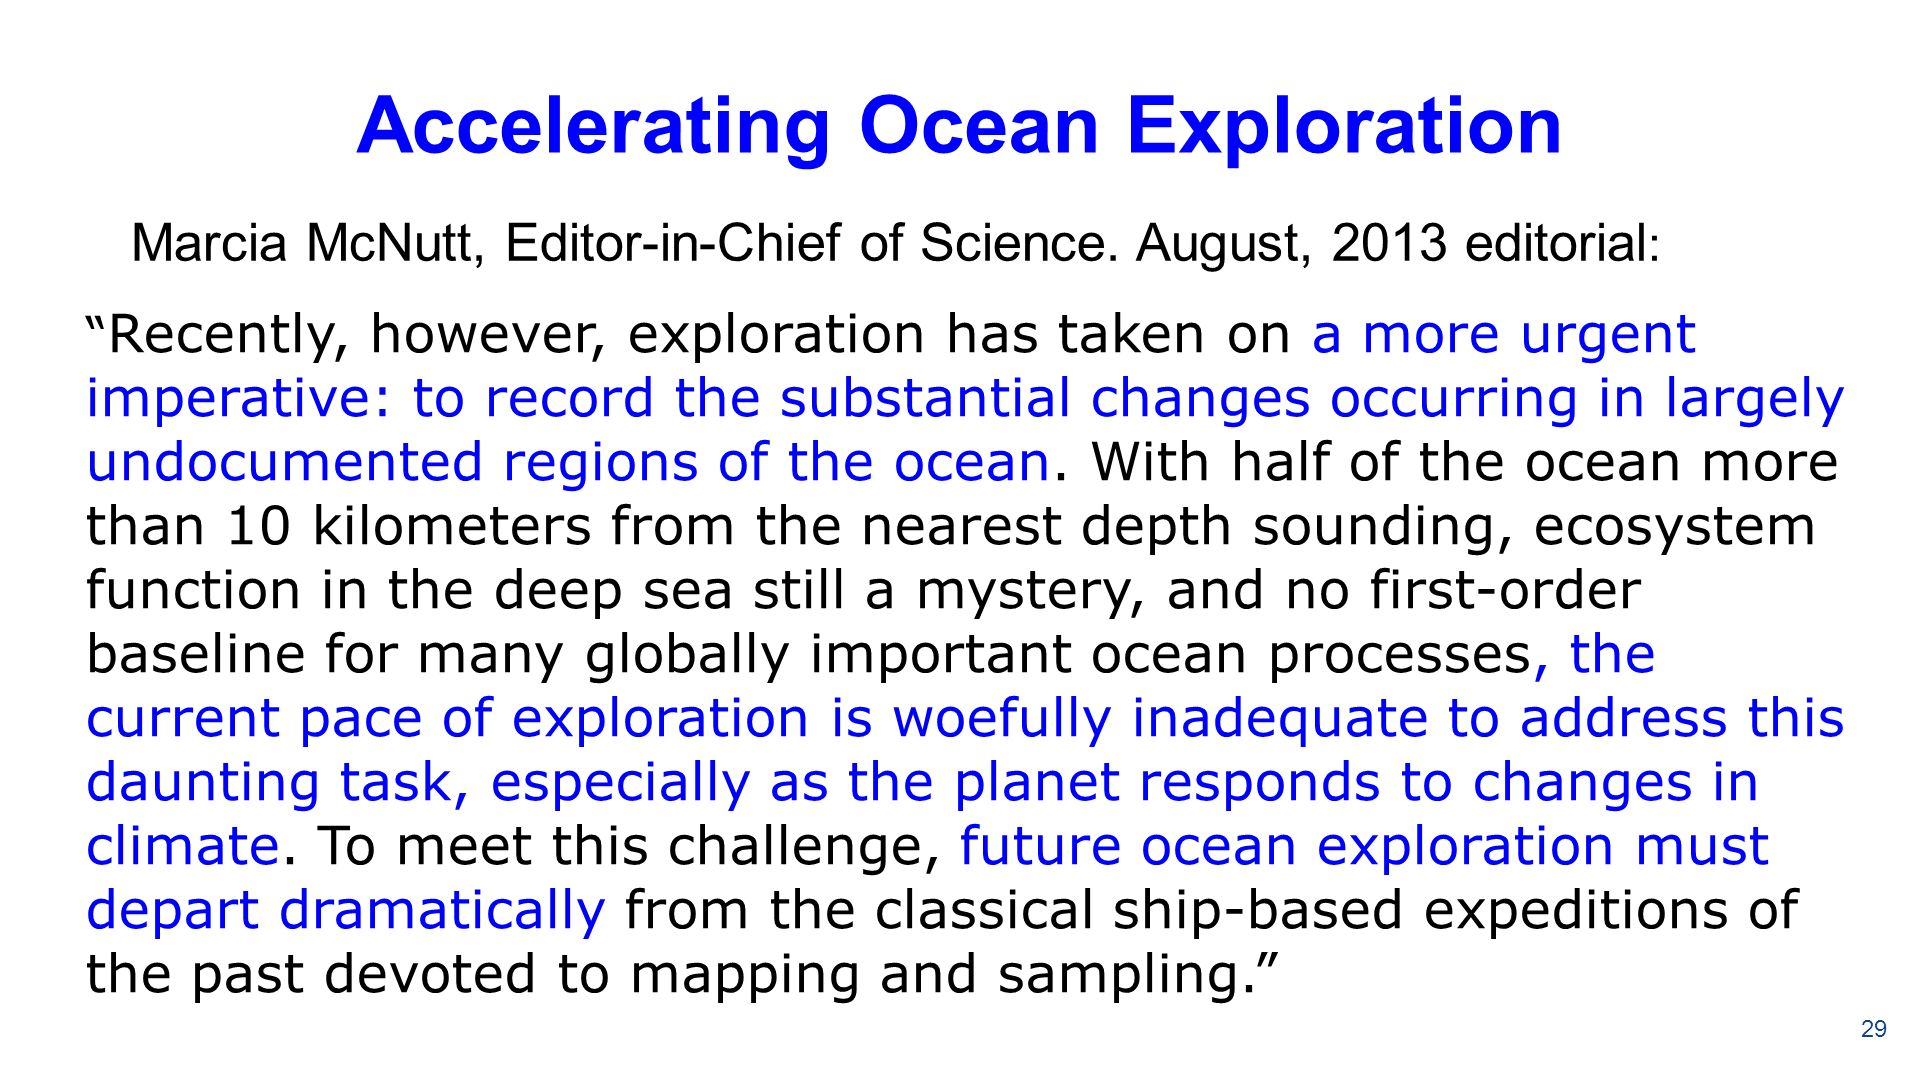 Accelerating Ocean Exploration Recently, however, exploration has taken on a more urgent imperative: to record the substantial changes occurring in largely undocumented regions of the ocean.